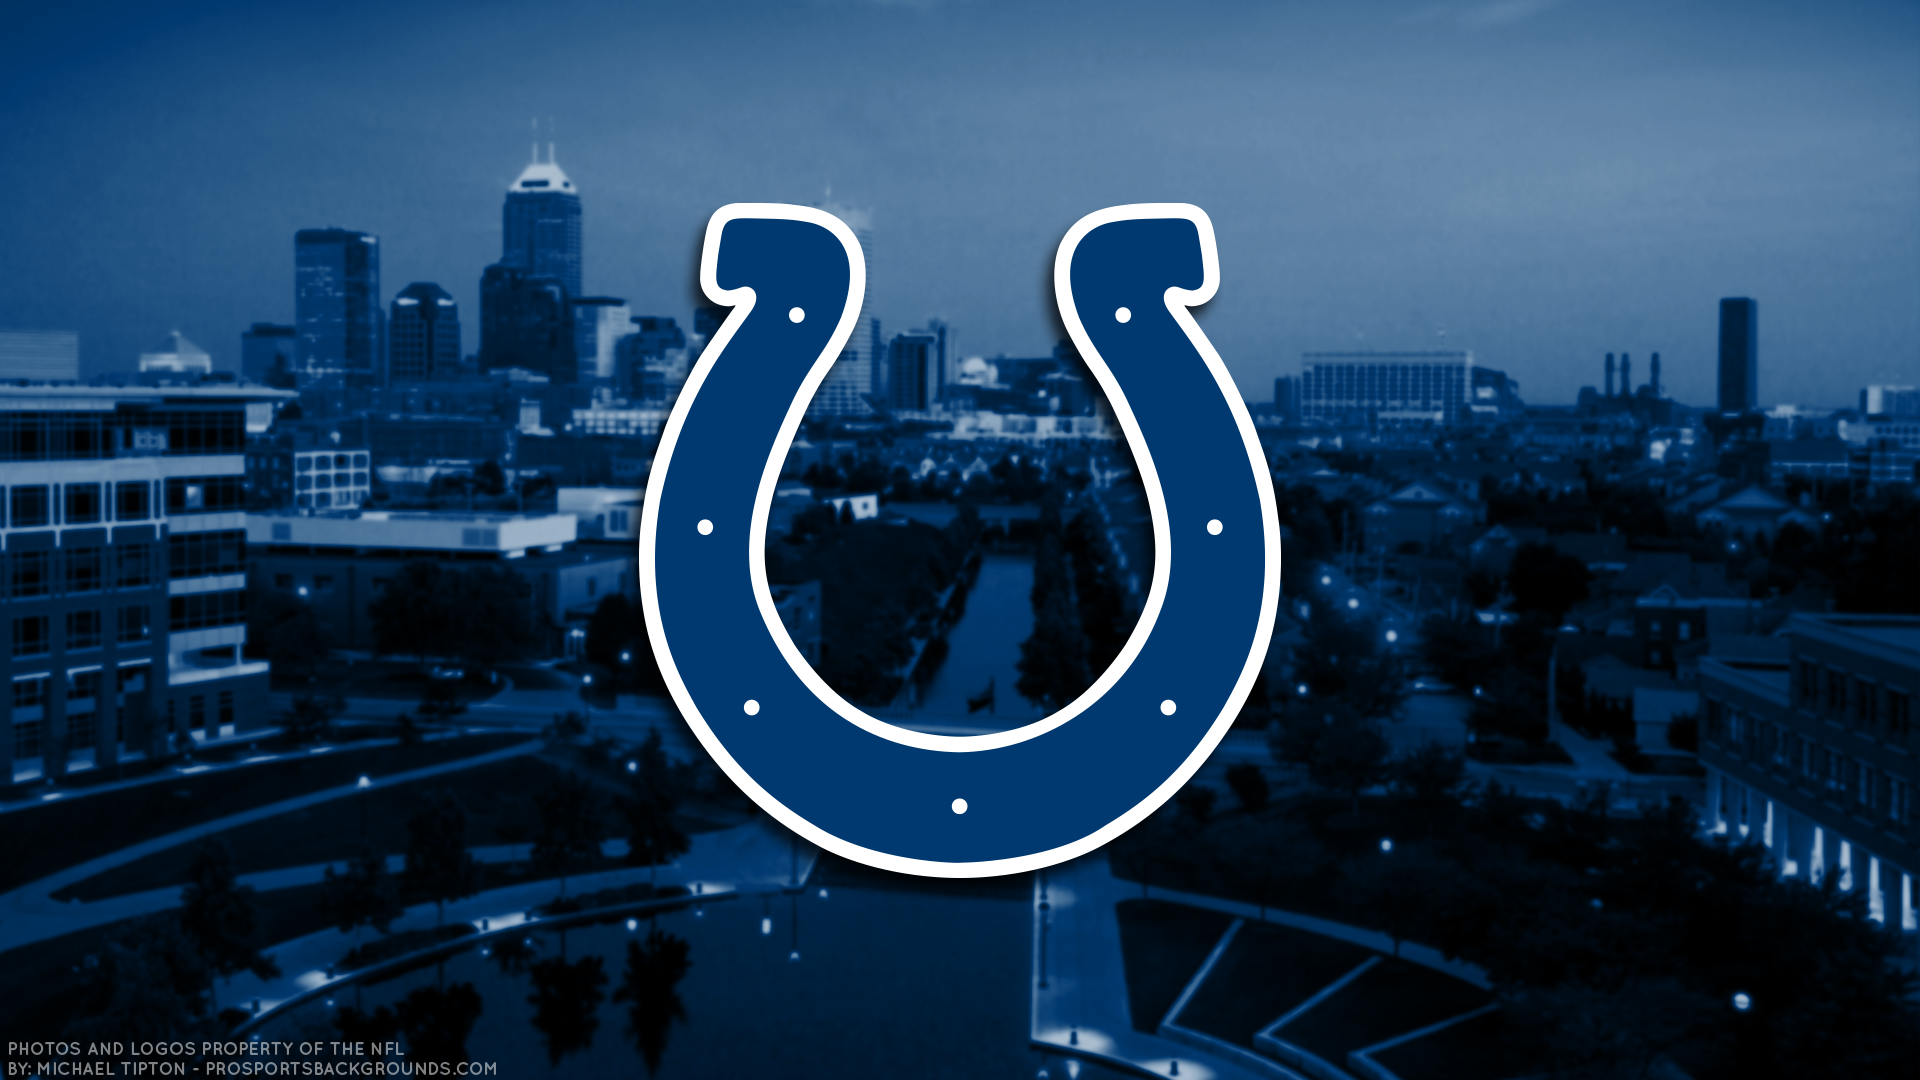 Indianapolis Colts 2017 HD 4k Schedule Wallpaper